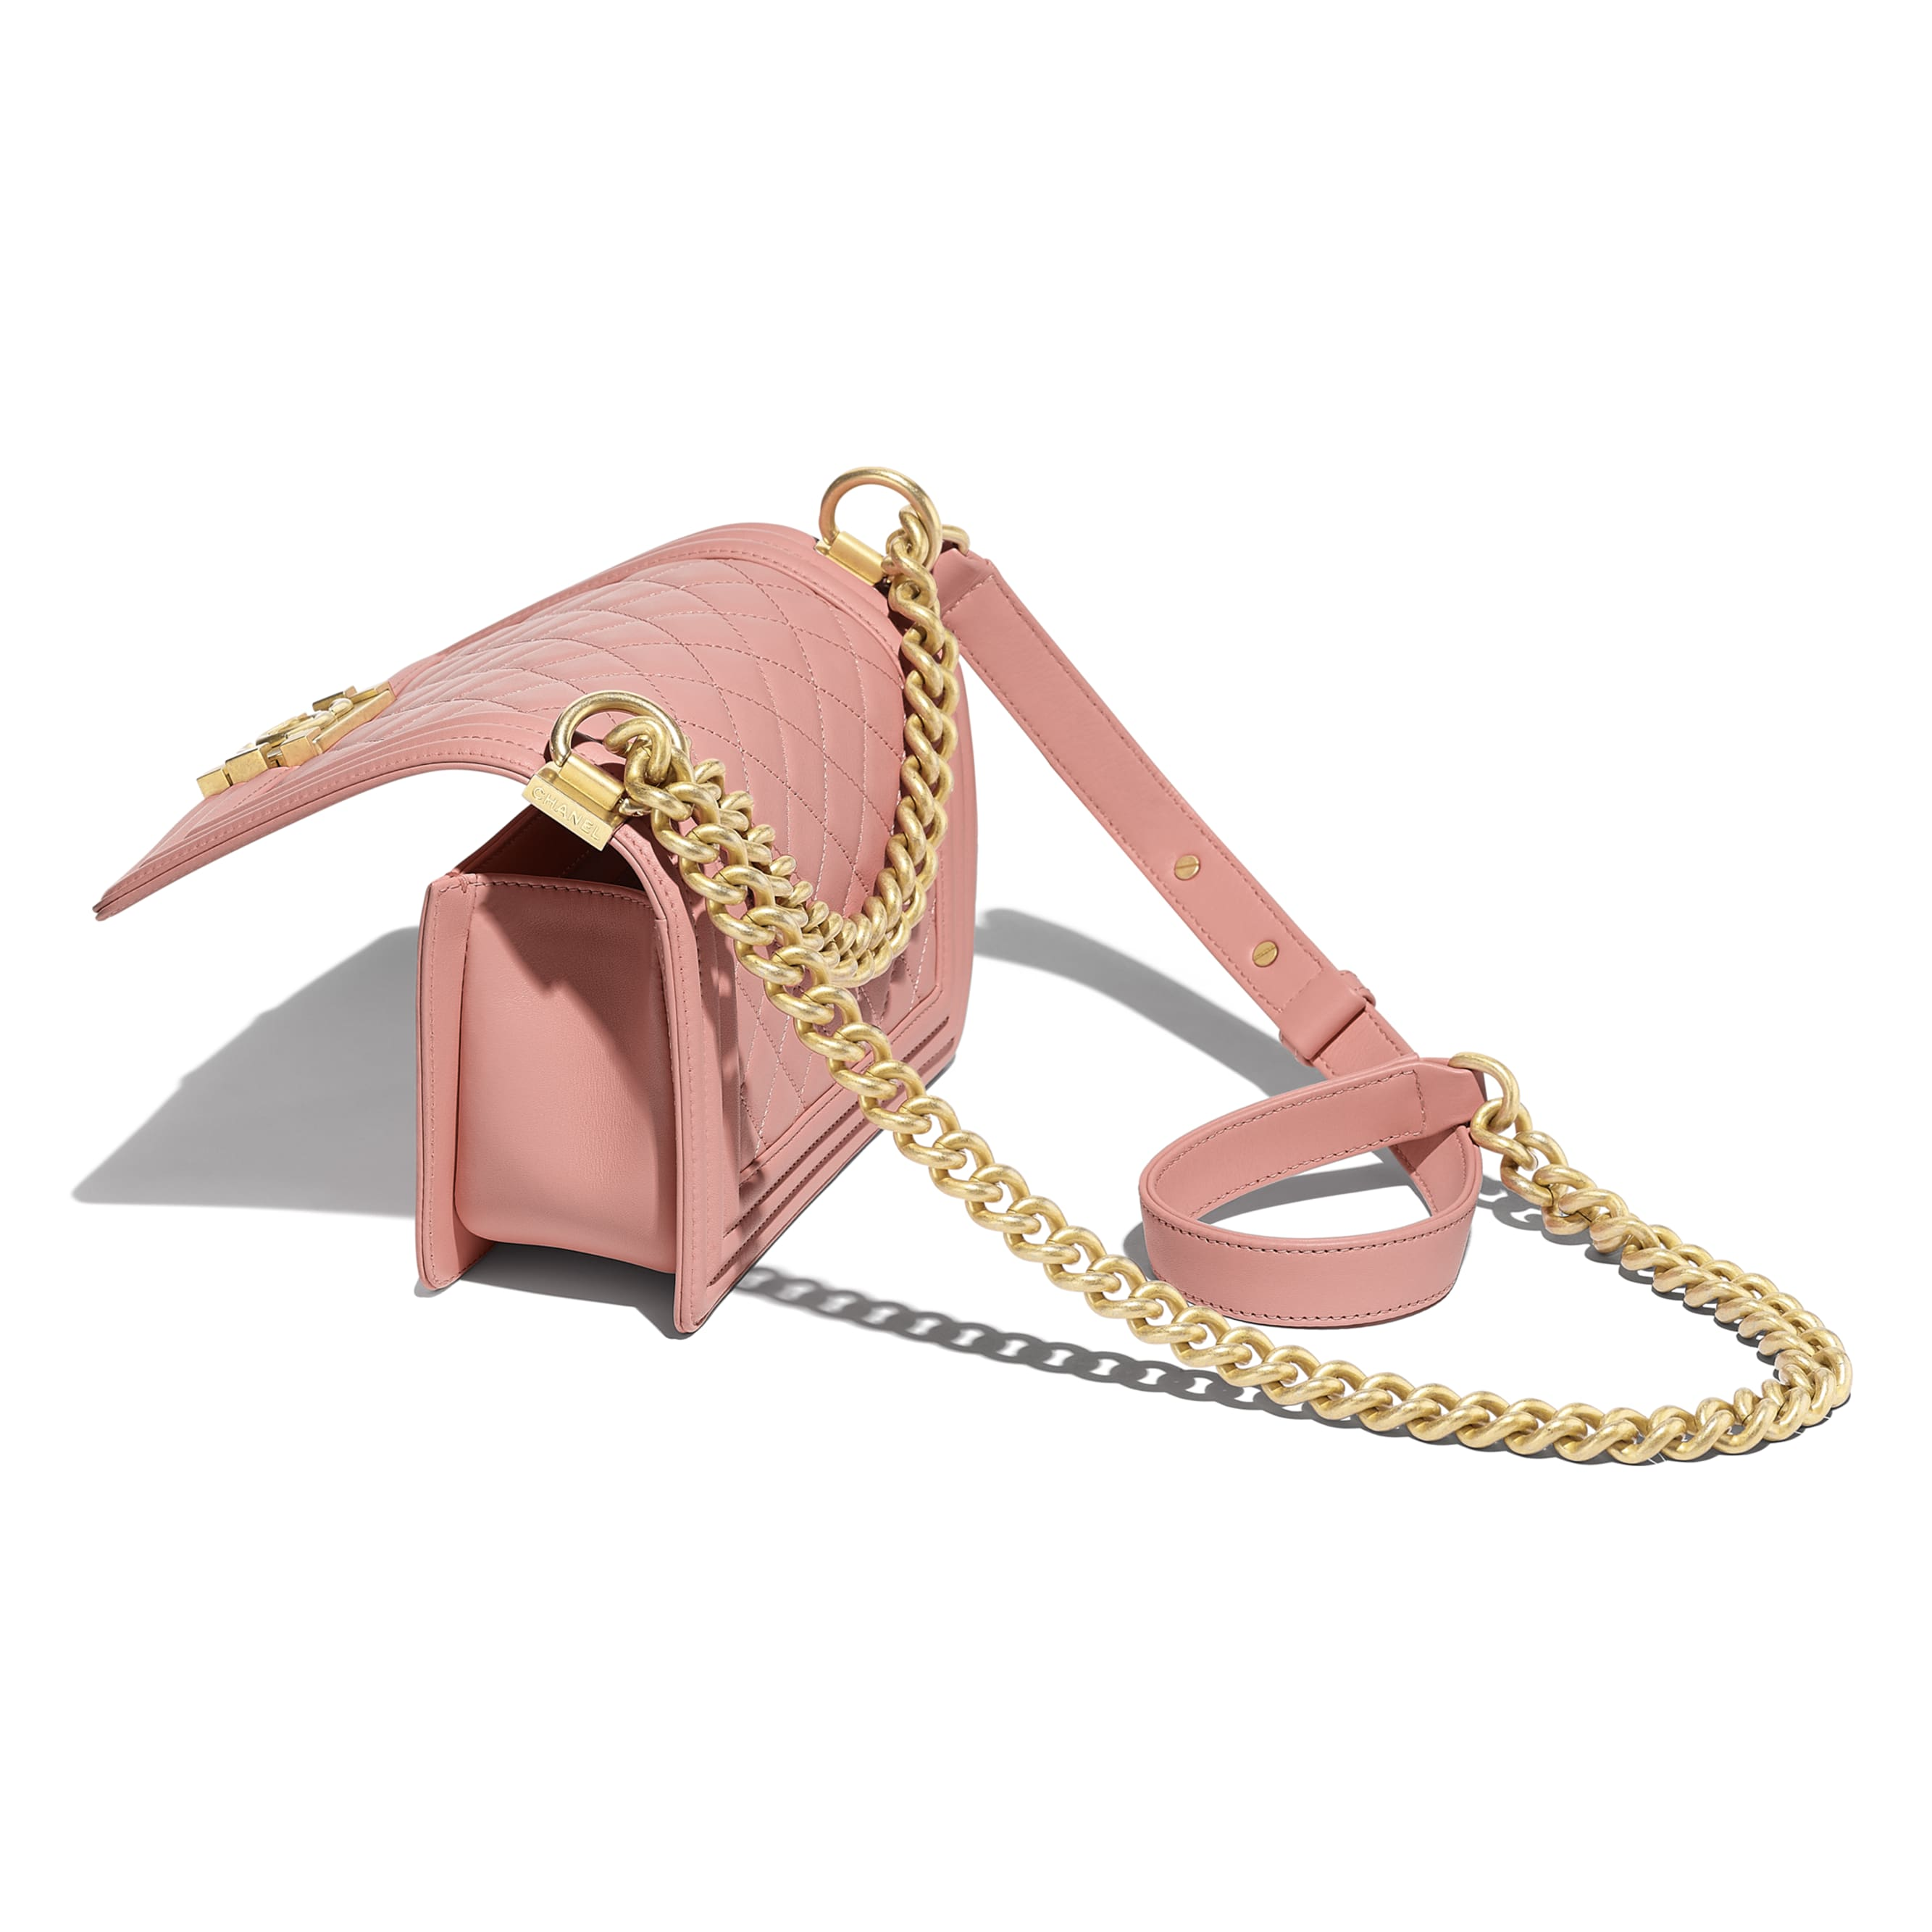 Small BOY CHANEL Handbag - Pink - Calfskin & Gold-Tone Metal - Other view - see standard sized version